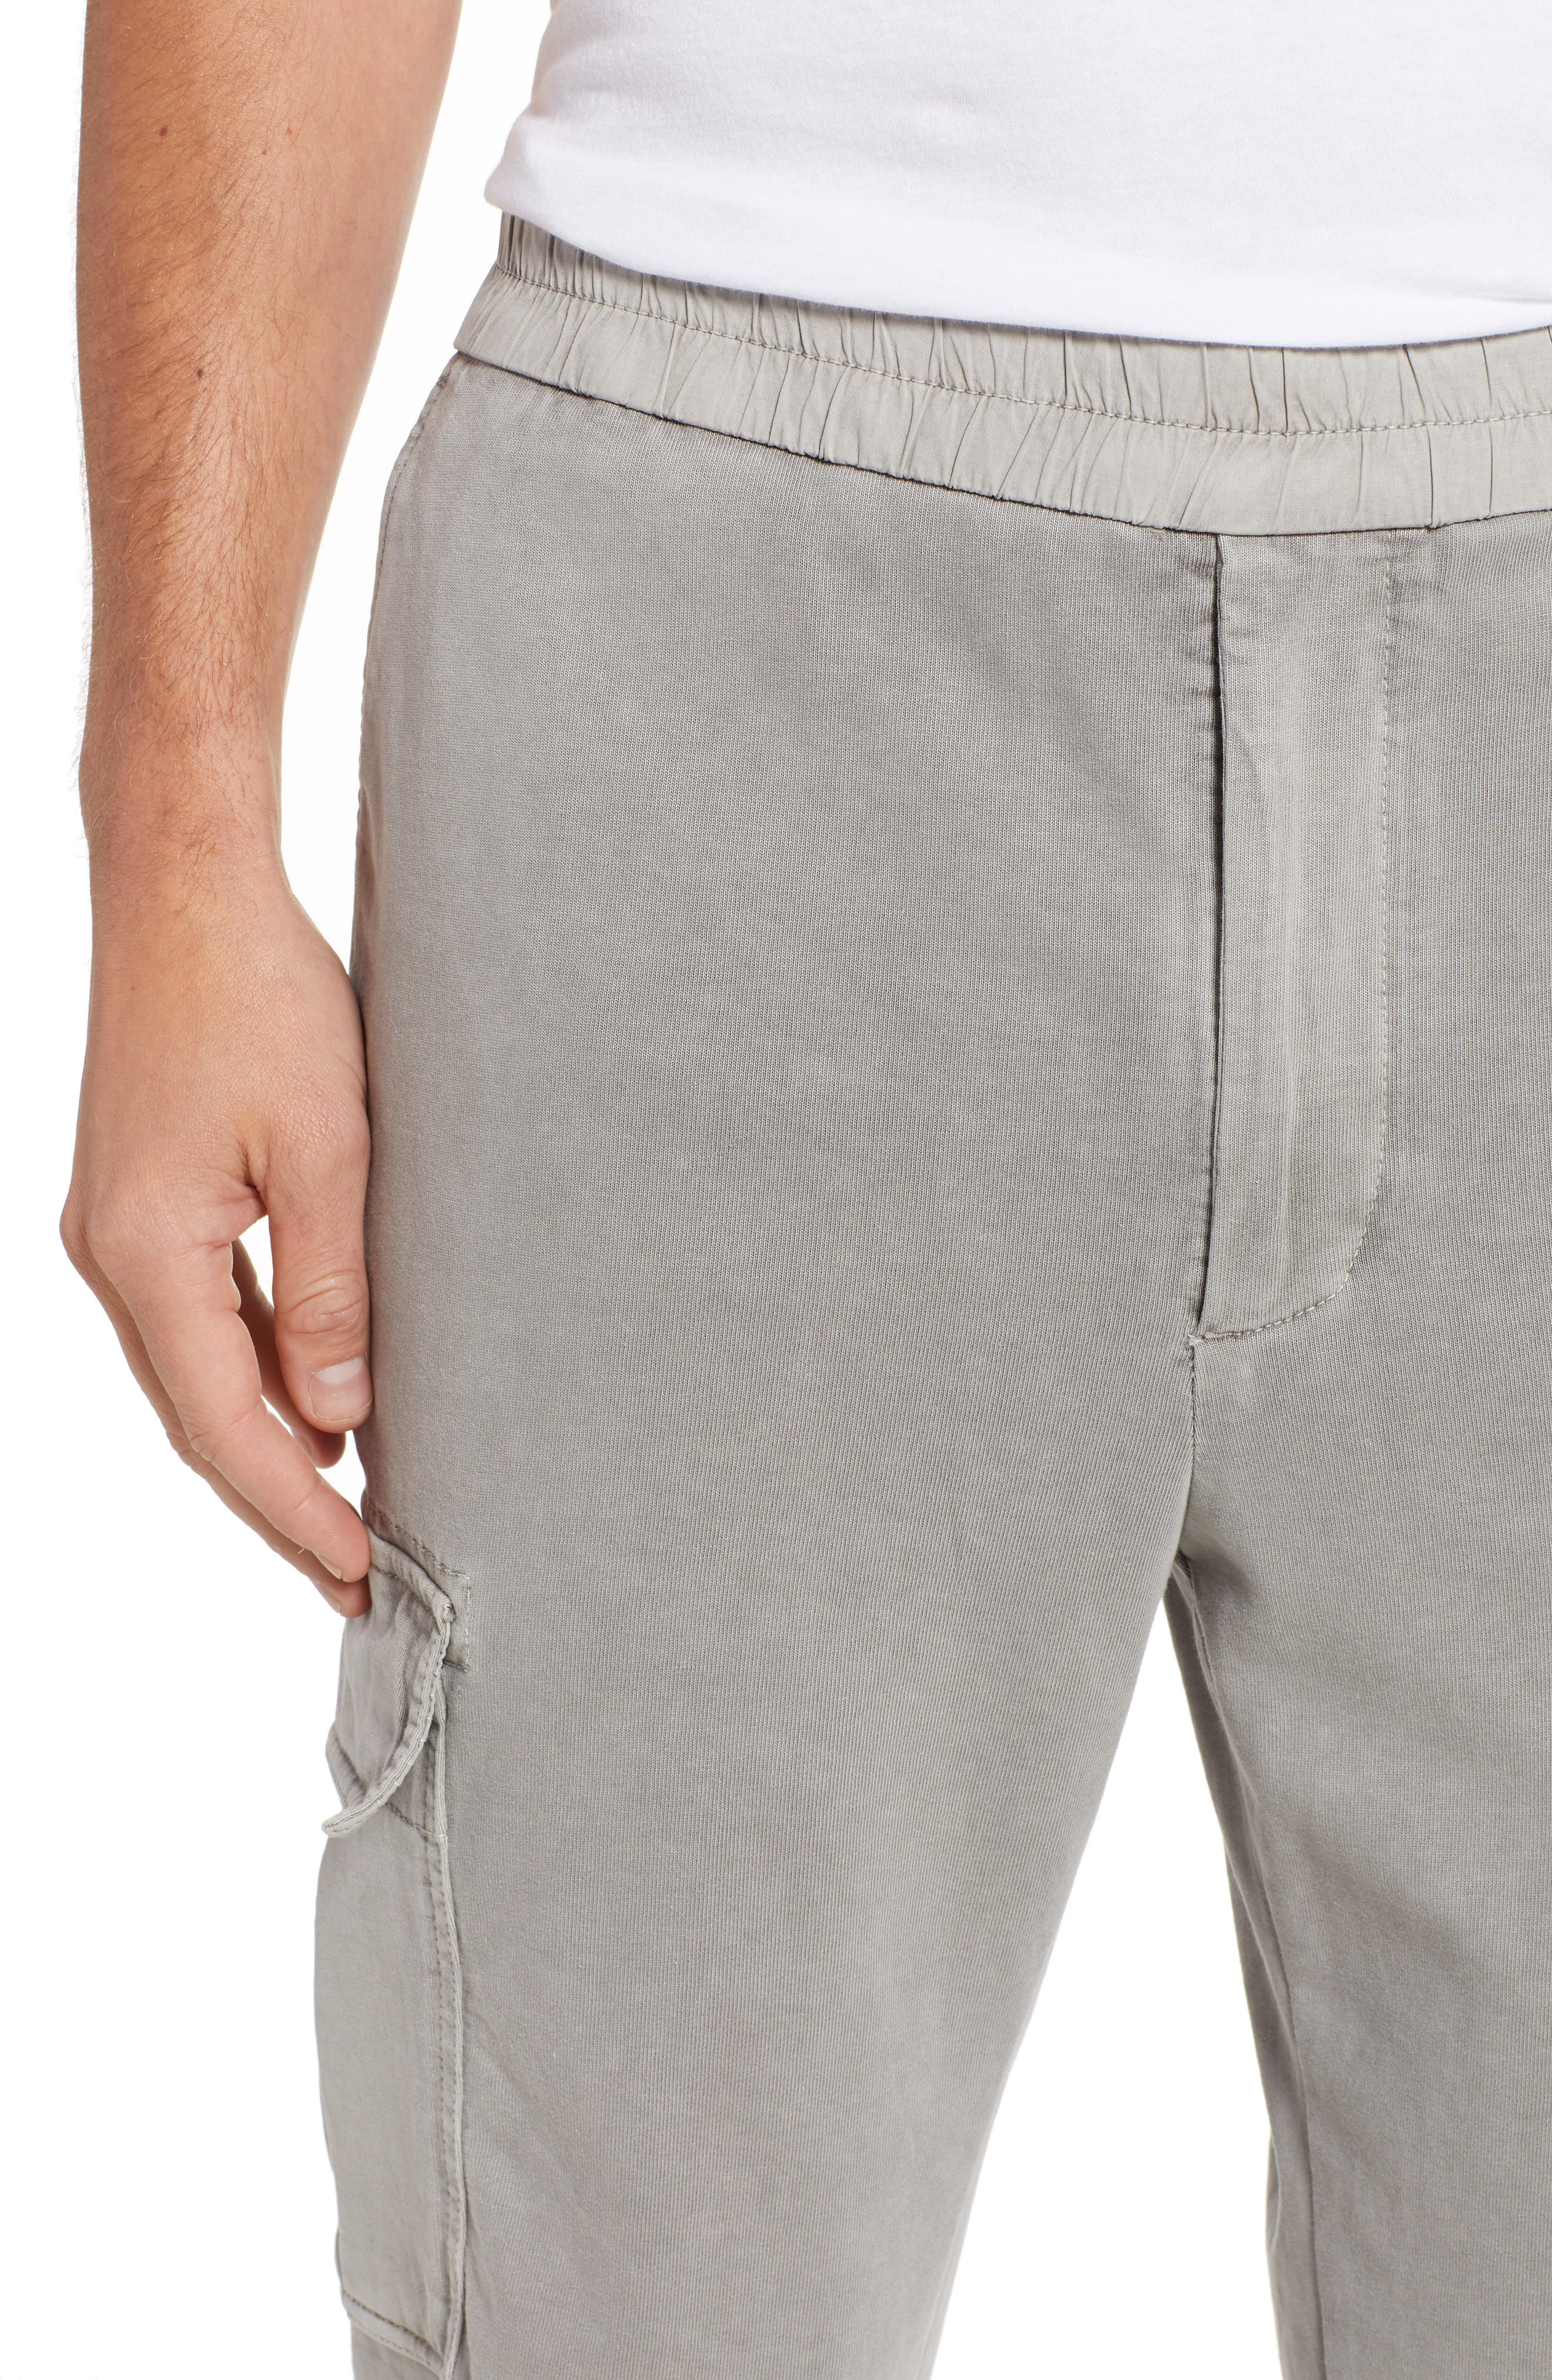 Cotton Jersey Relaxed Fit Cargo Pants,                             Alternate thumbnail 3, color,                             Paver Pigment